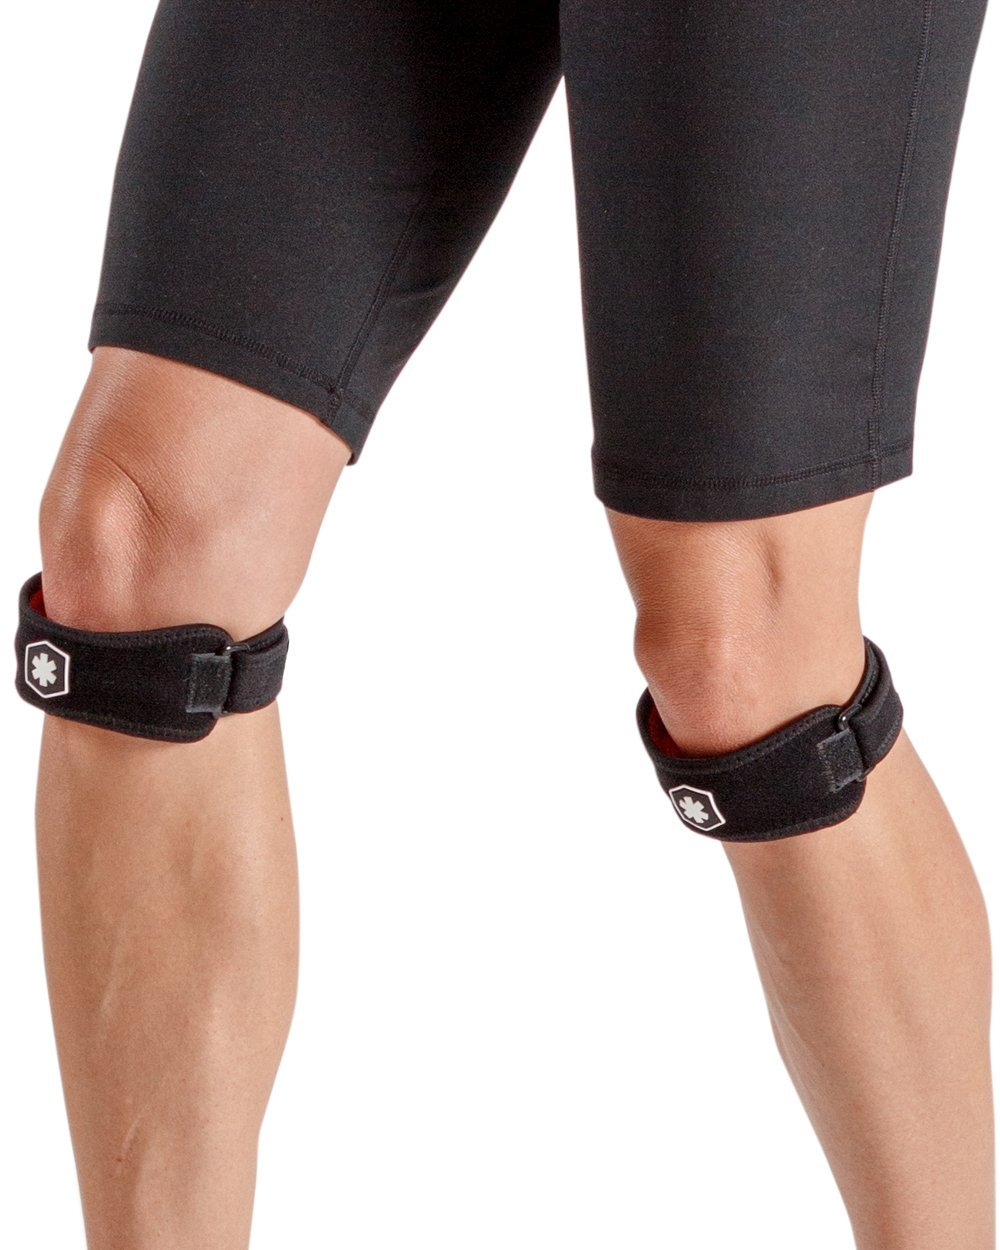 Fashion Knee Patella Compression Support Strap Brace With 4x Powerful Magnets Foot Care Tool Beauty & Health